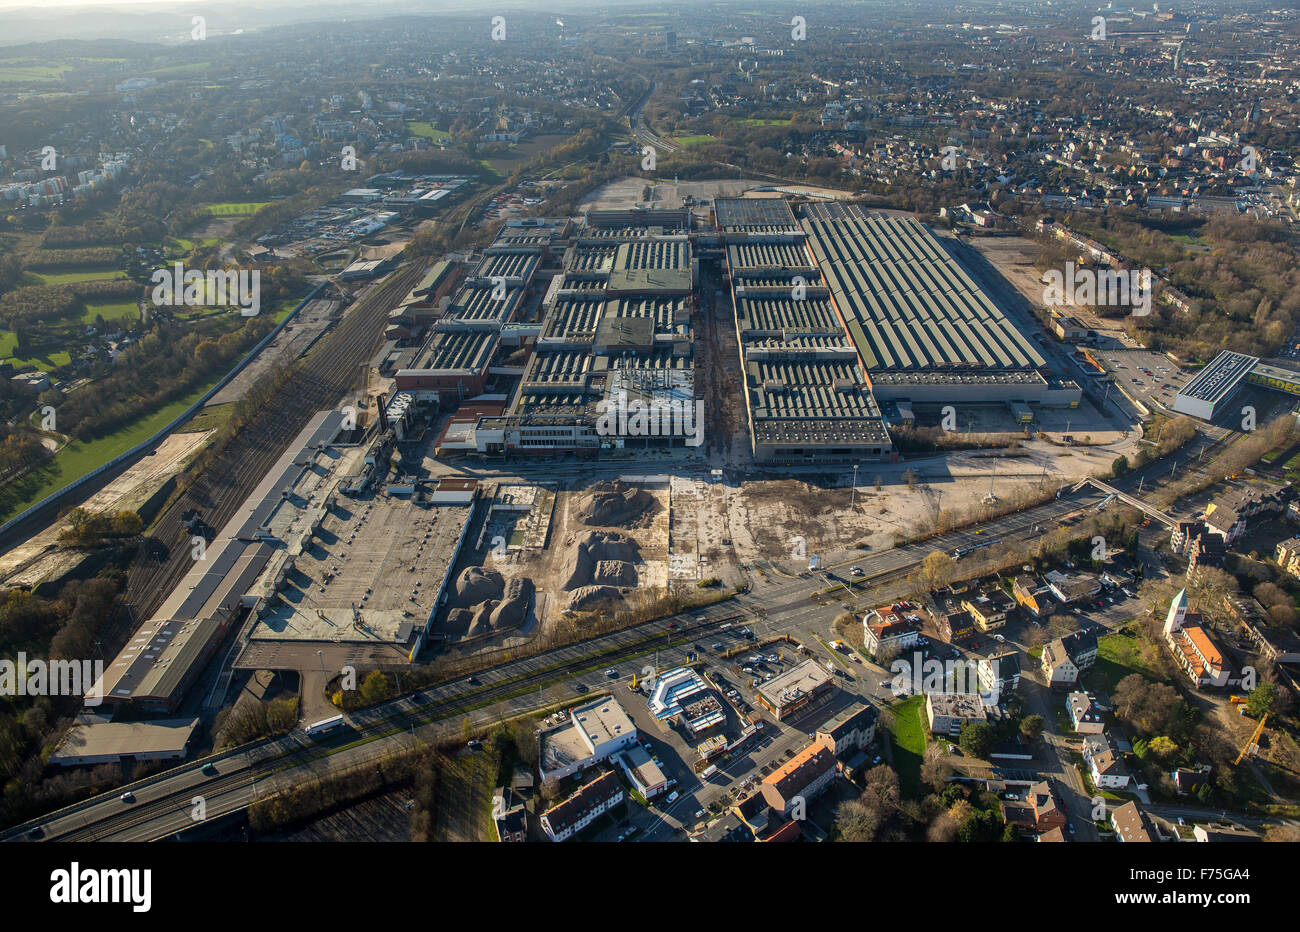 Opel plant 1, demolition, former paintshop, Bochum, Ruhr area, North Rhine Westphalia Germany Europe aerial view - Stock Image